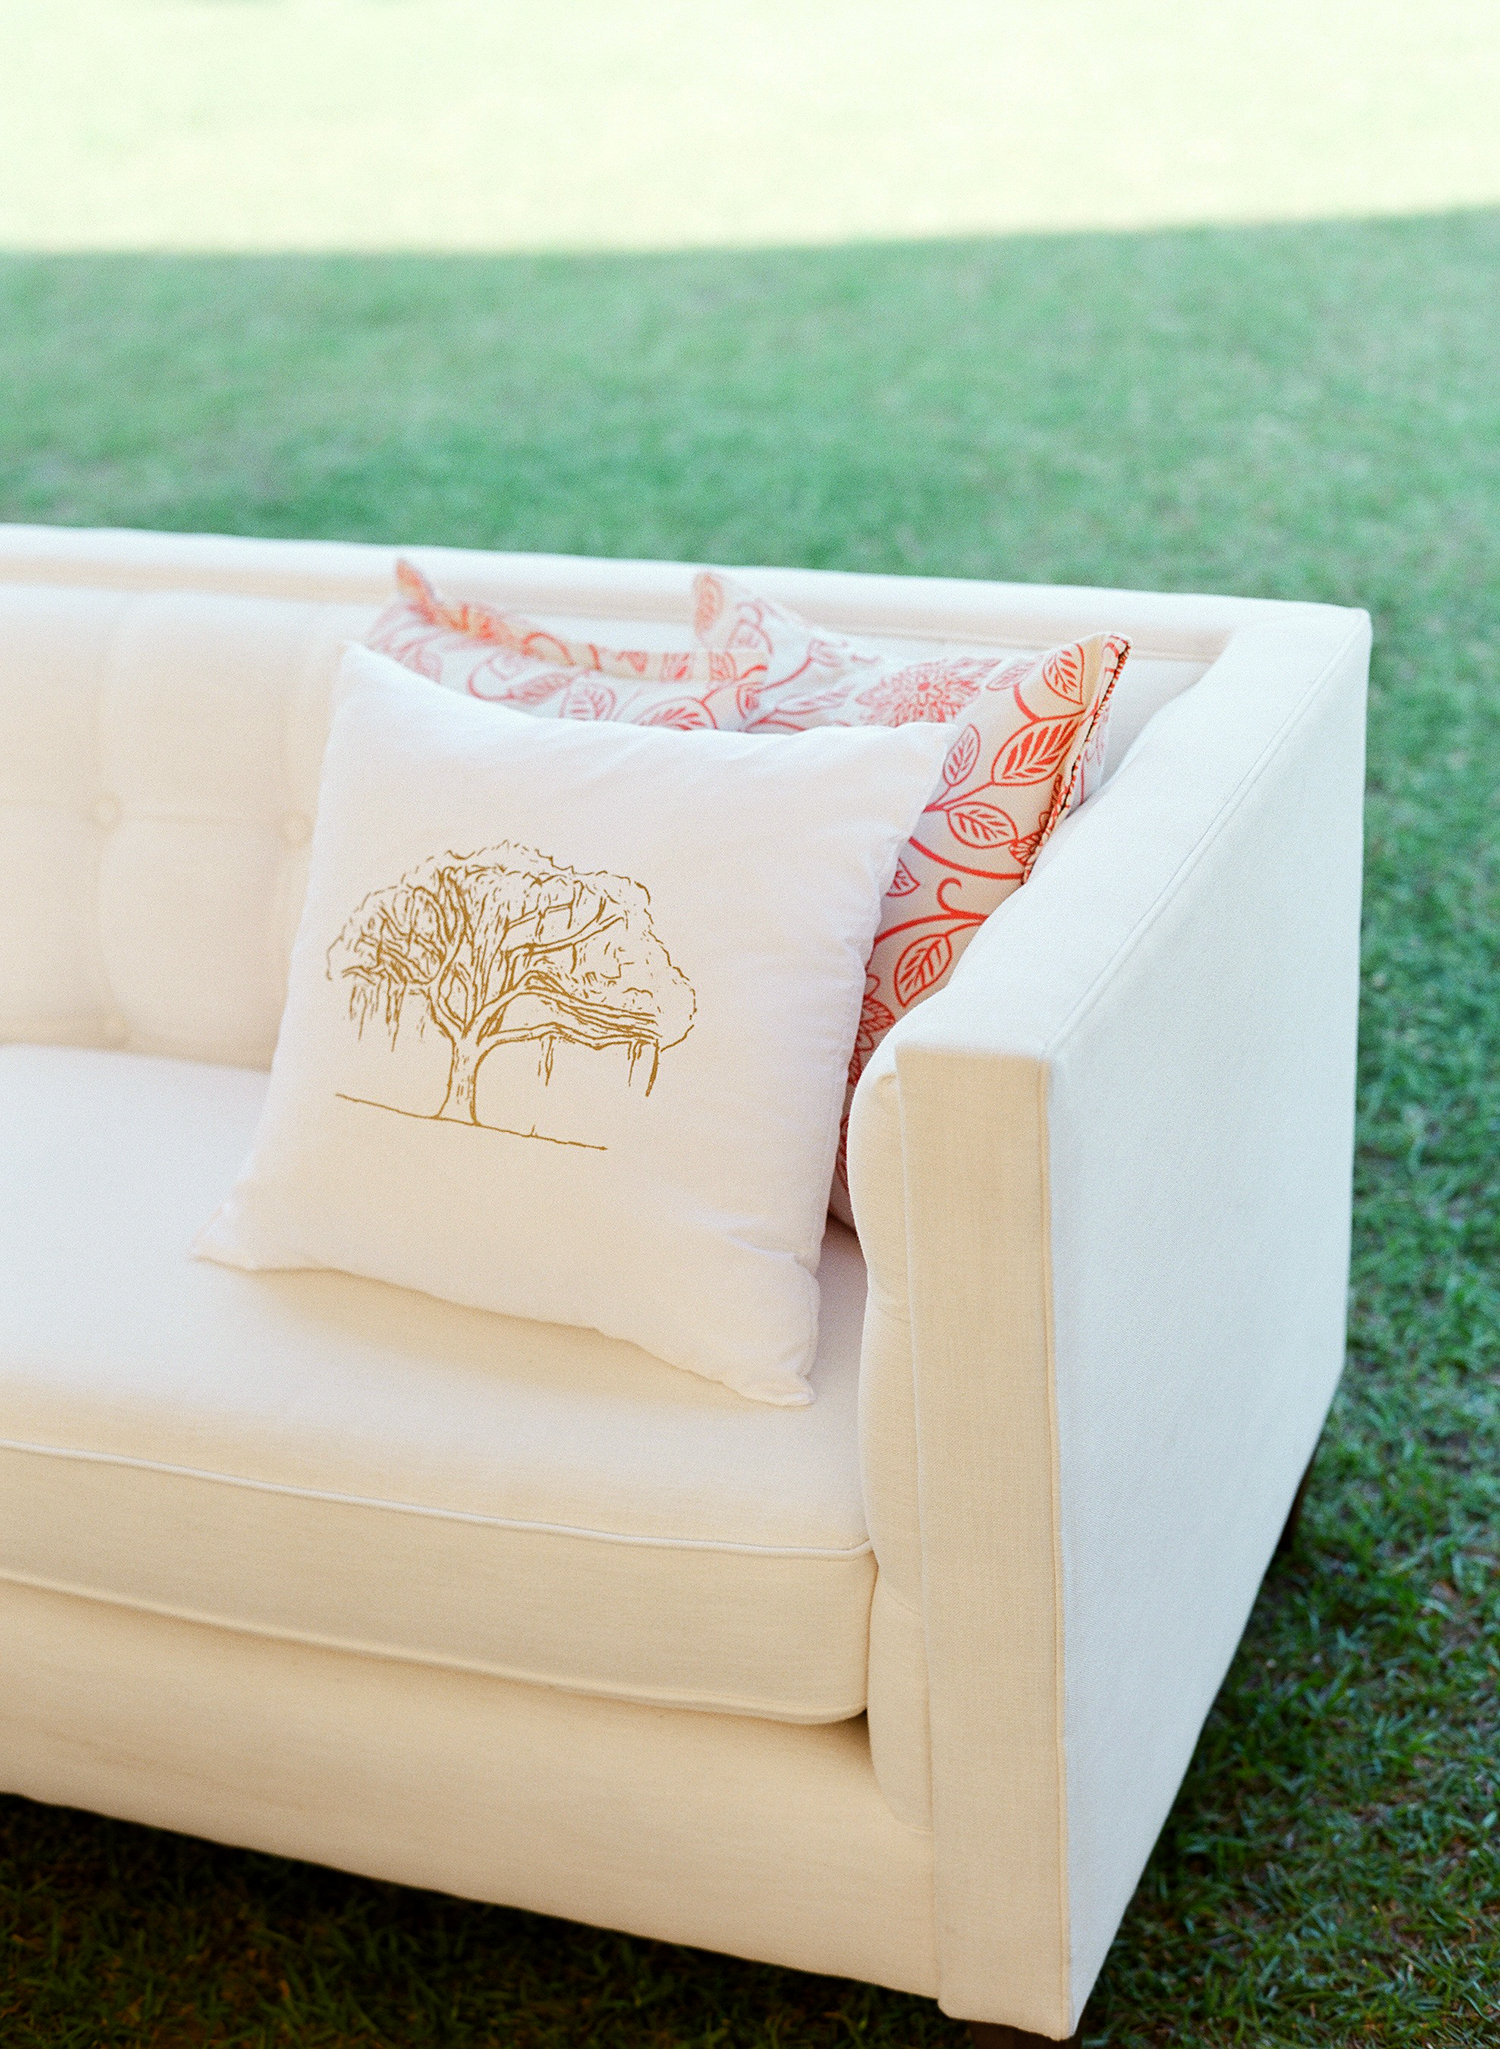 giordana and geoffrey sofa and pillows